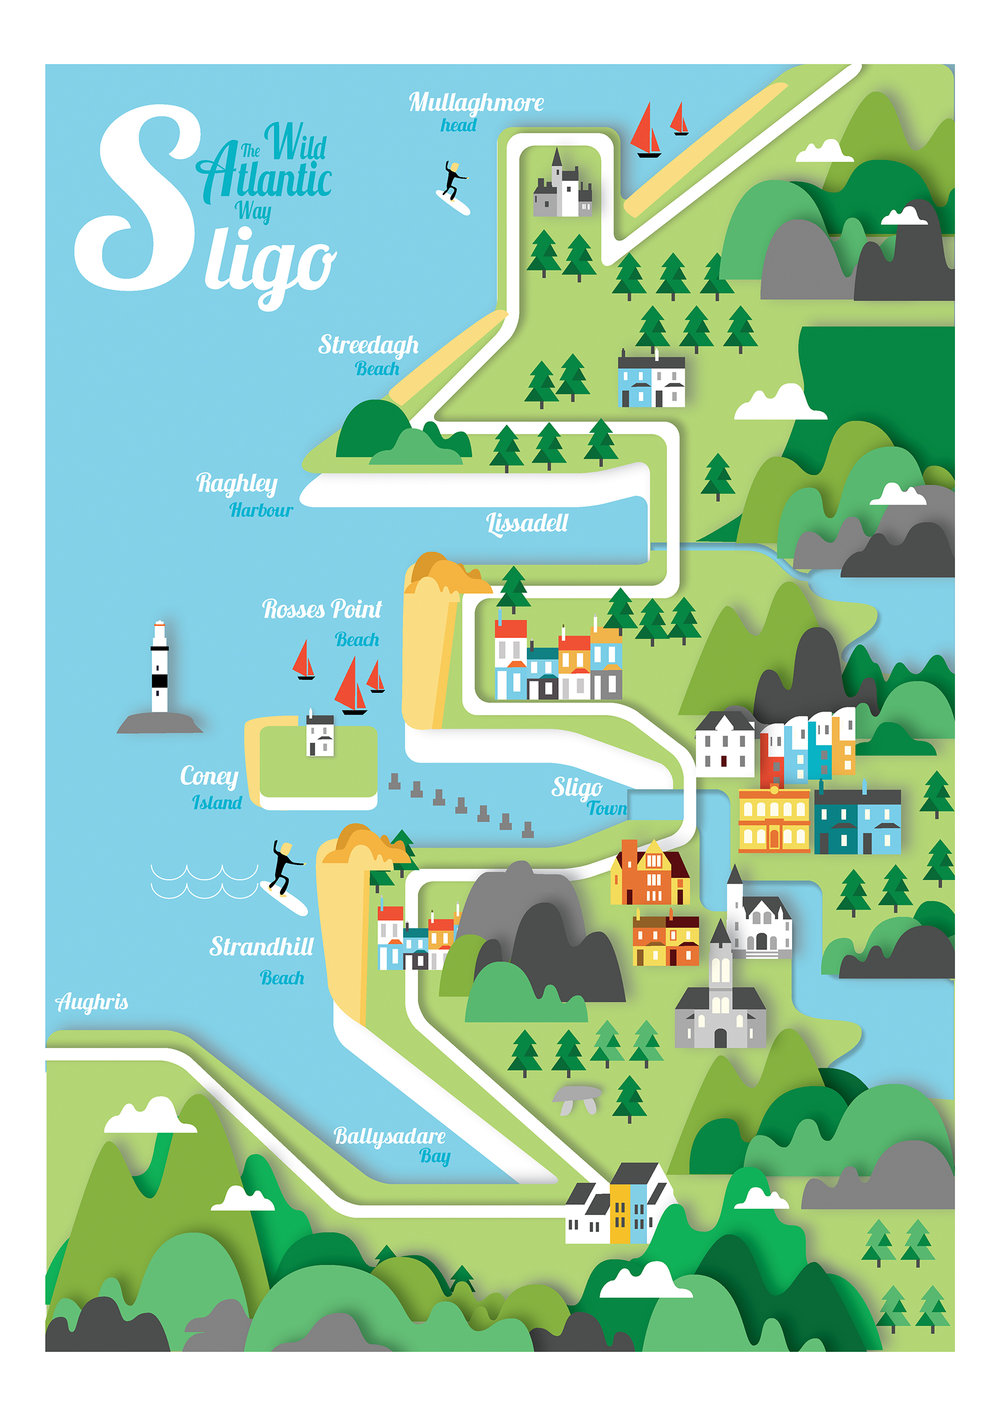 map of sligo